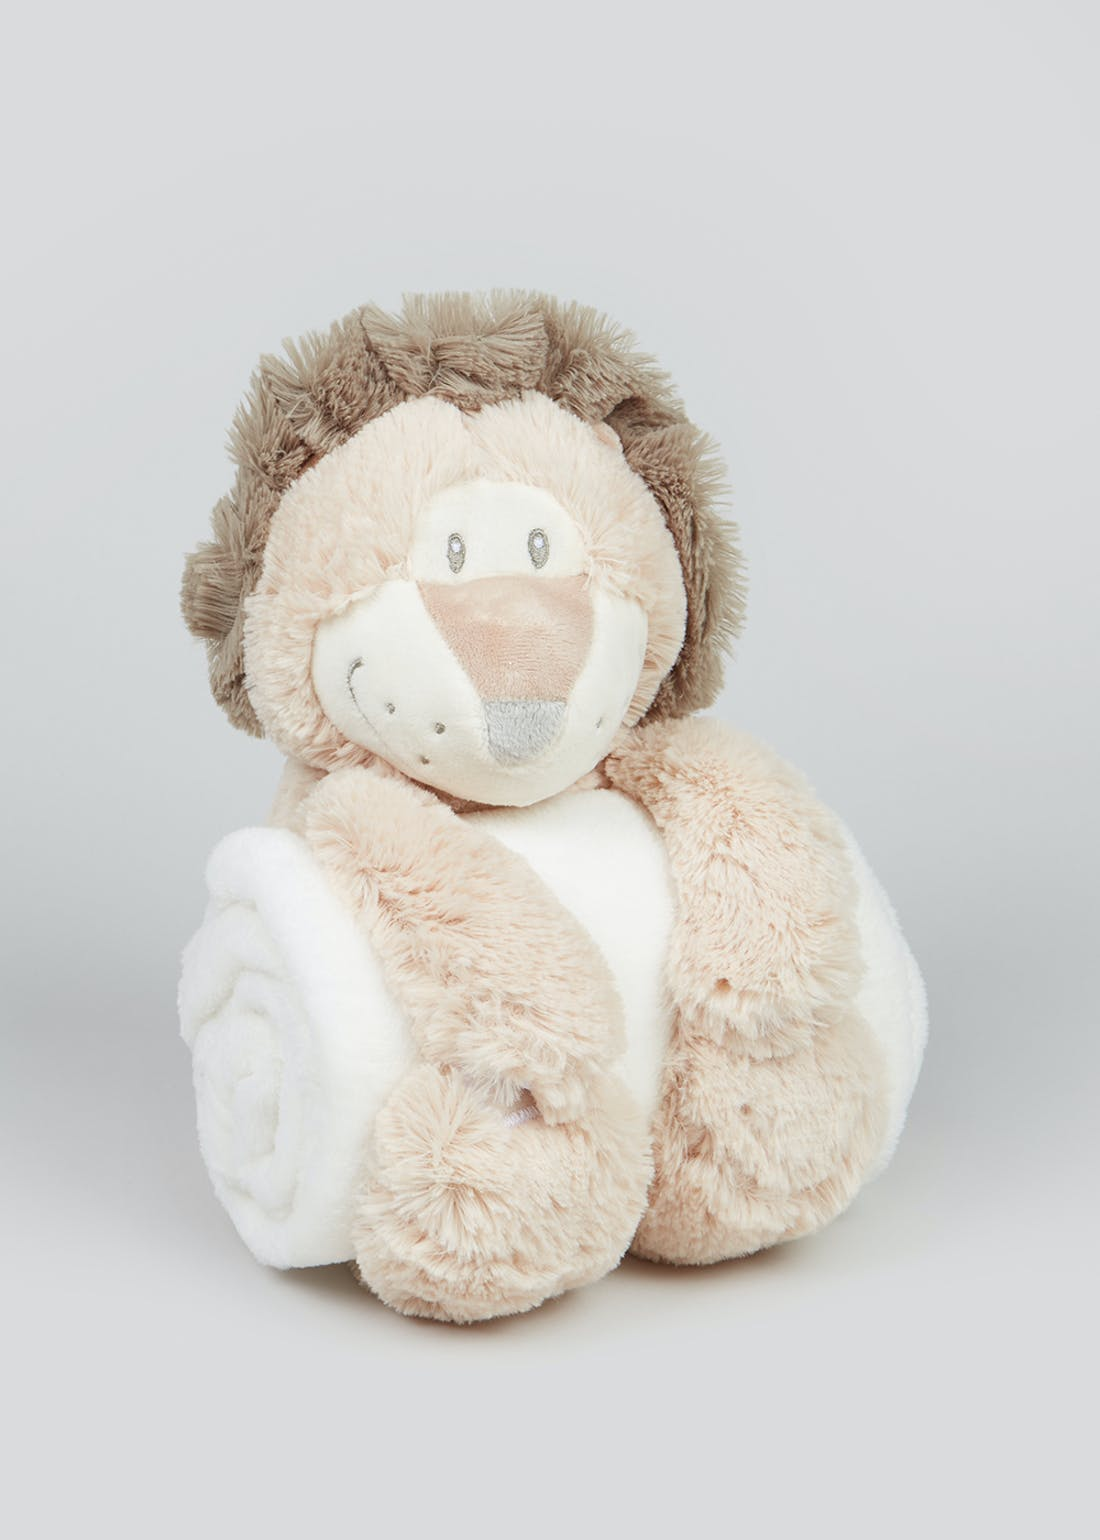 Lion Soft Toy & Blanket (One Size)